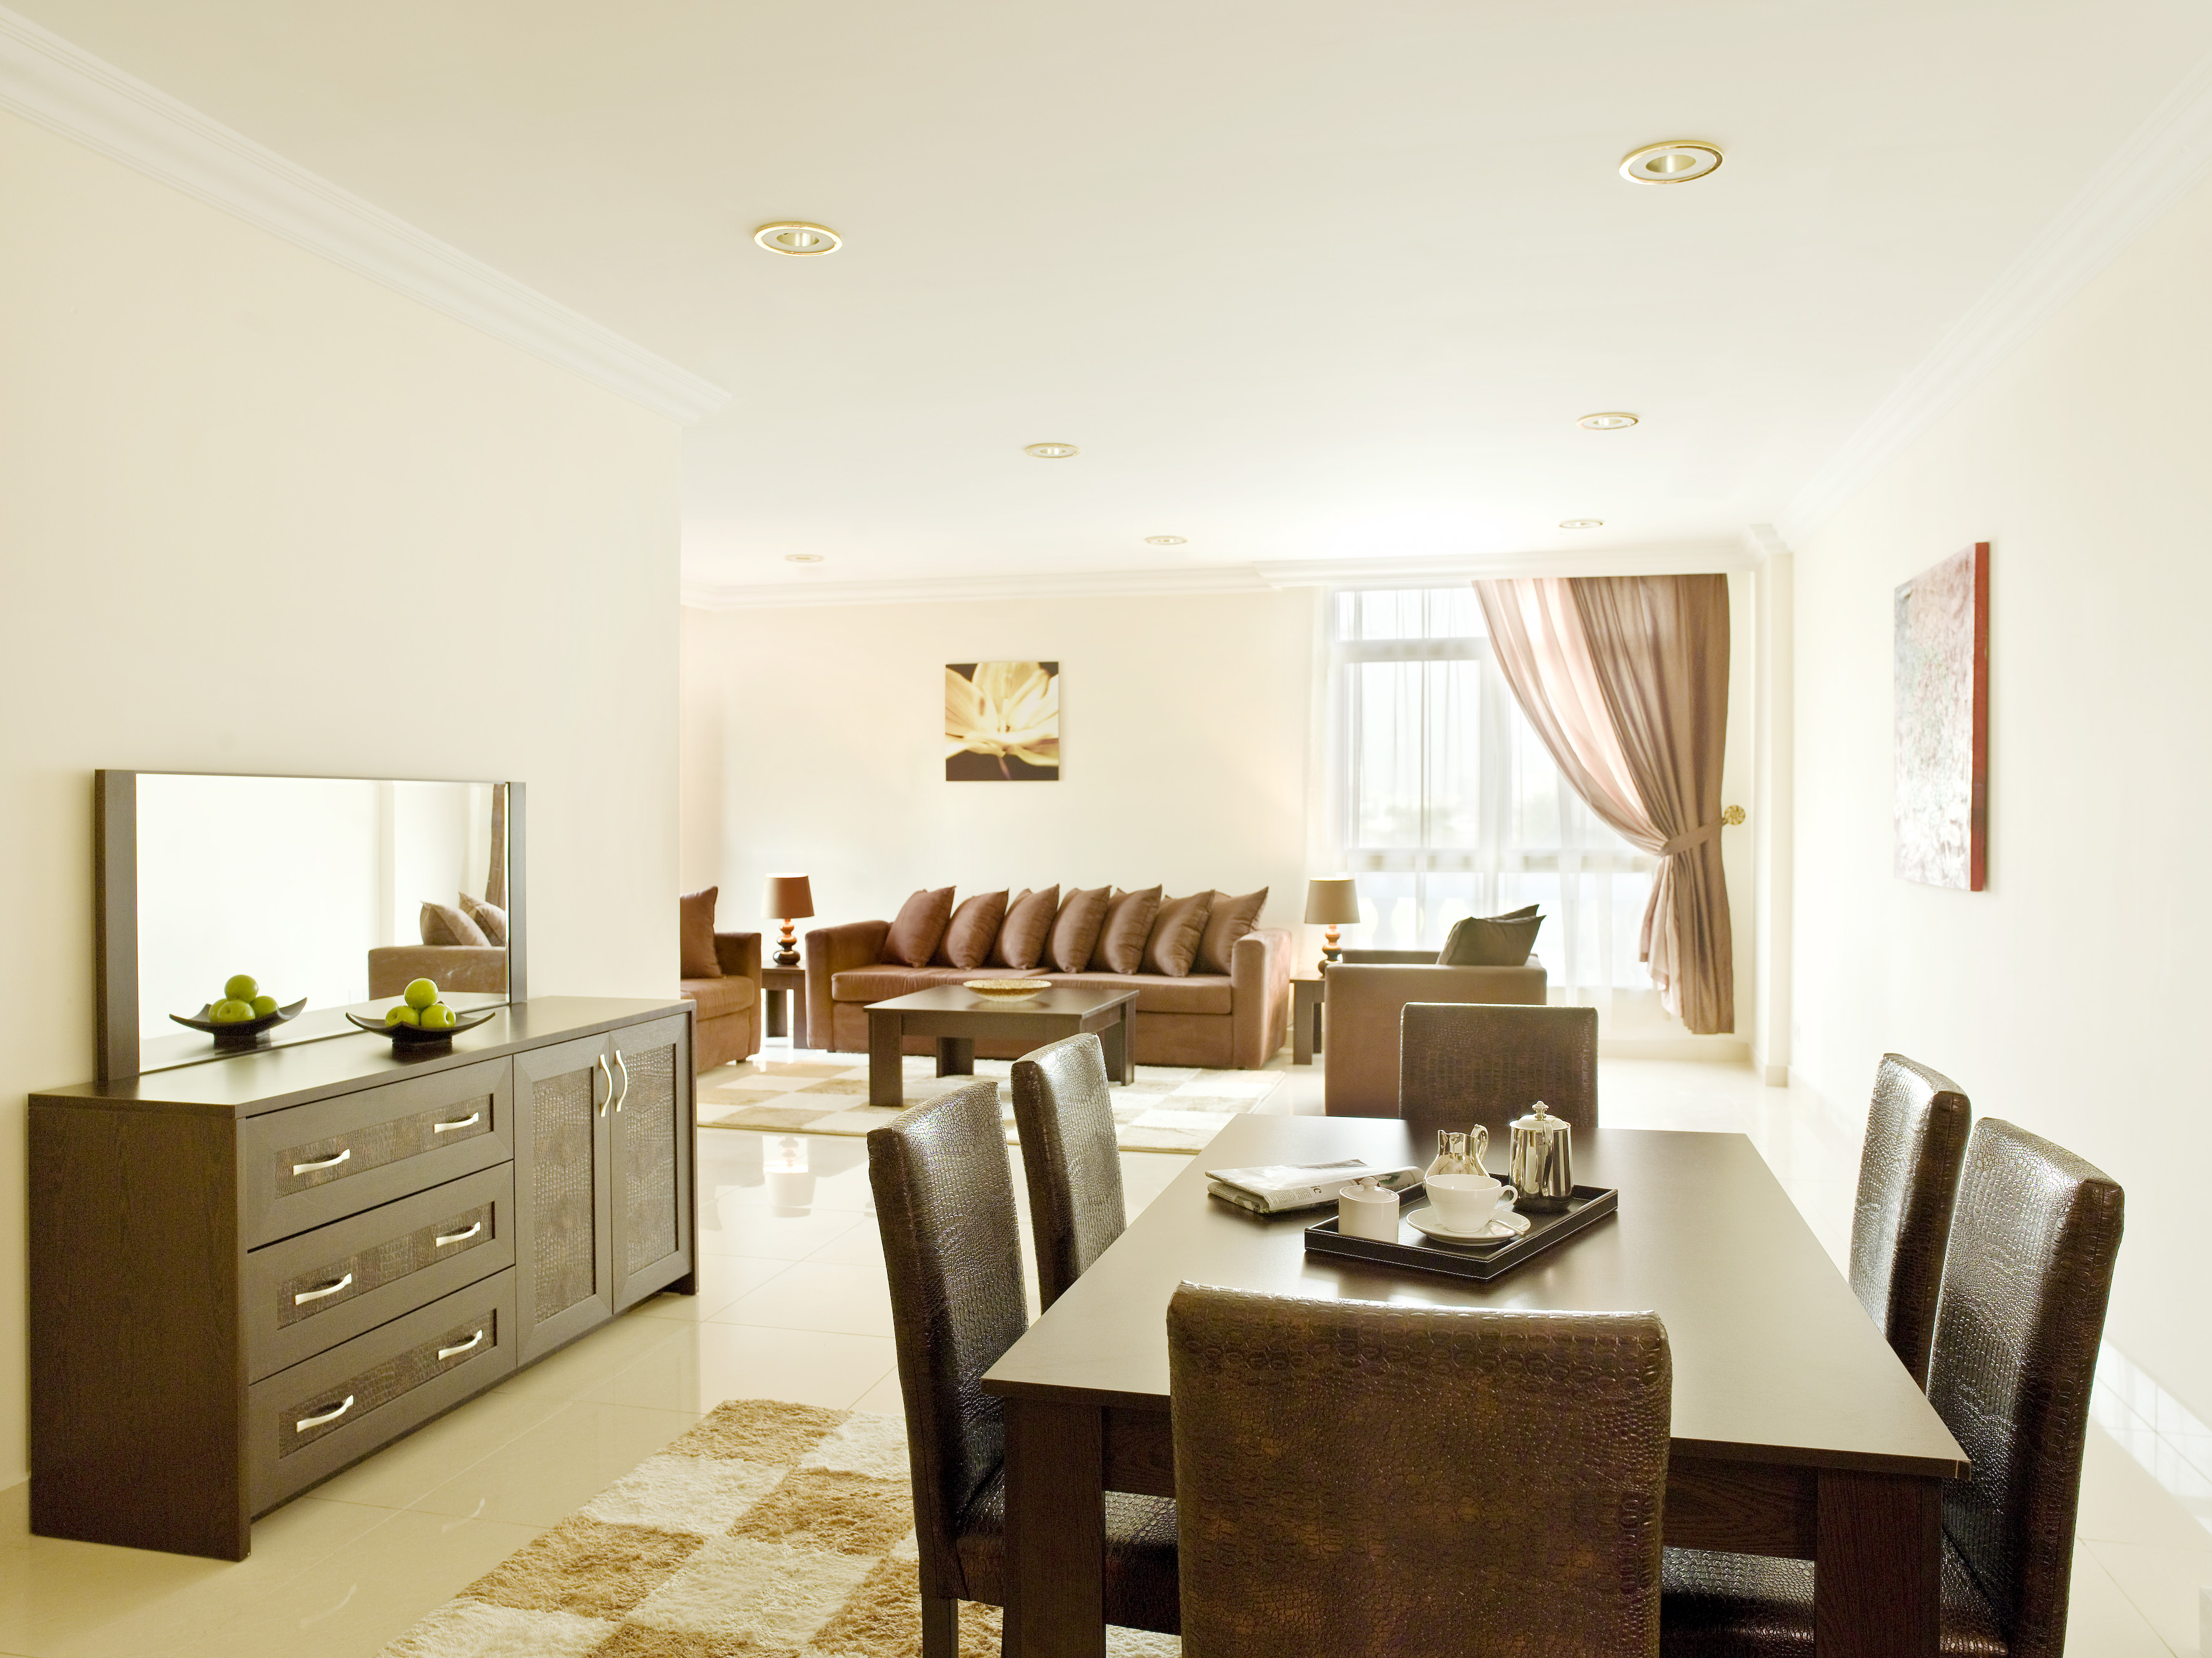 3 BHK - Living Room